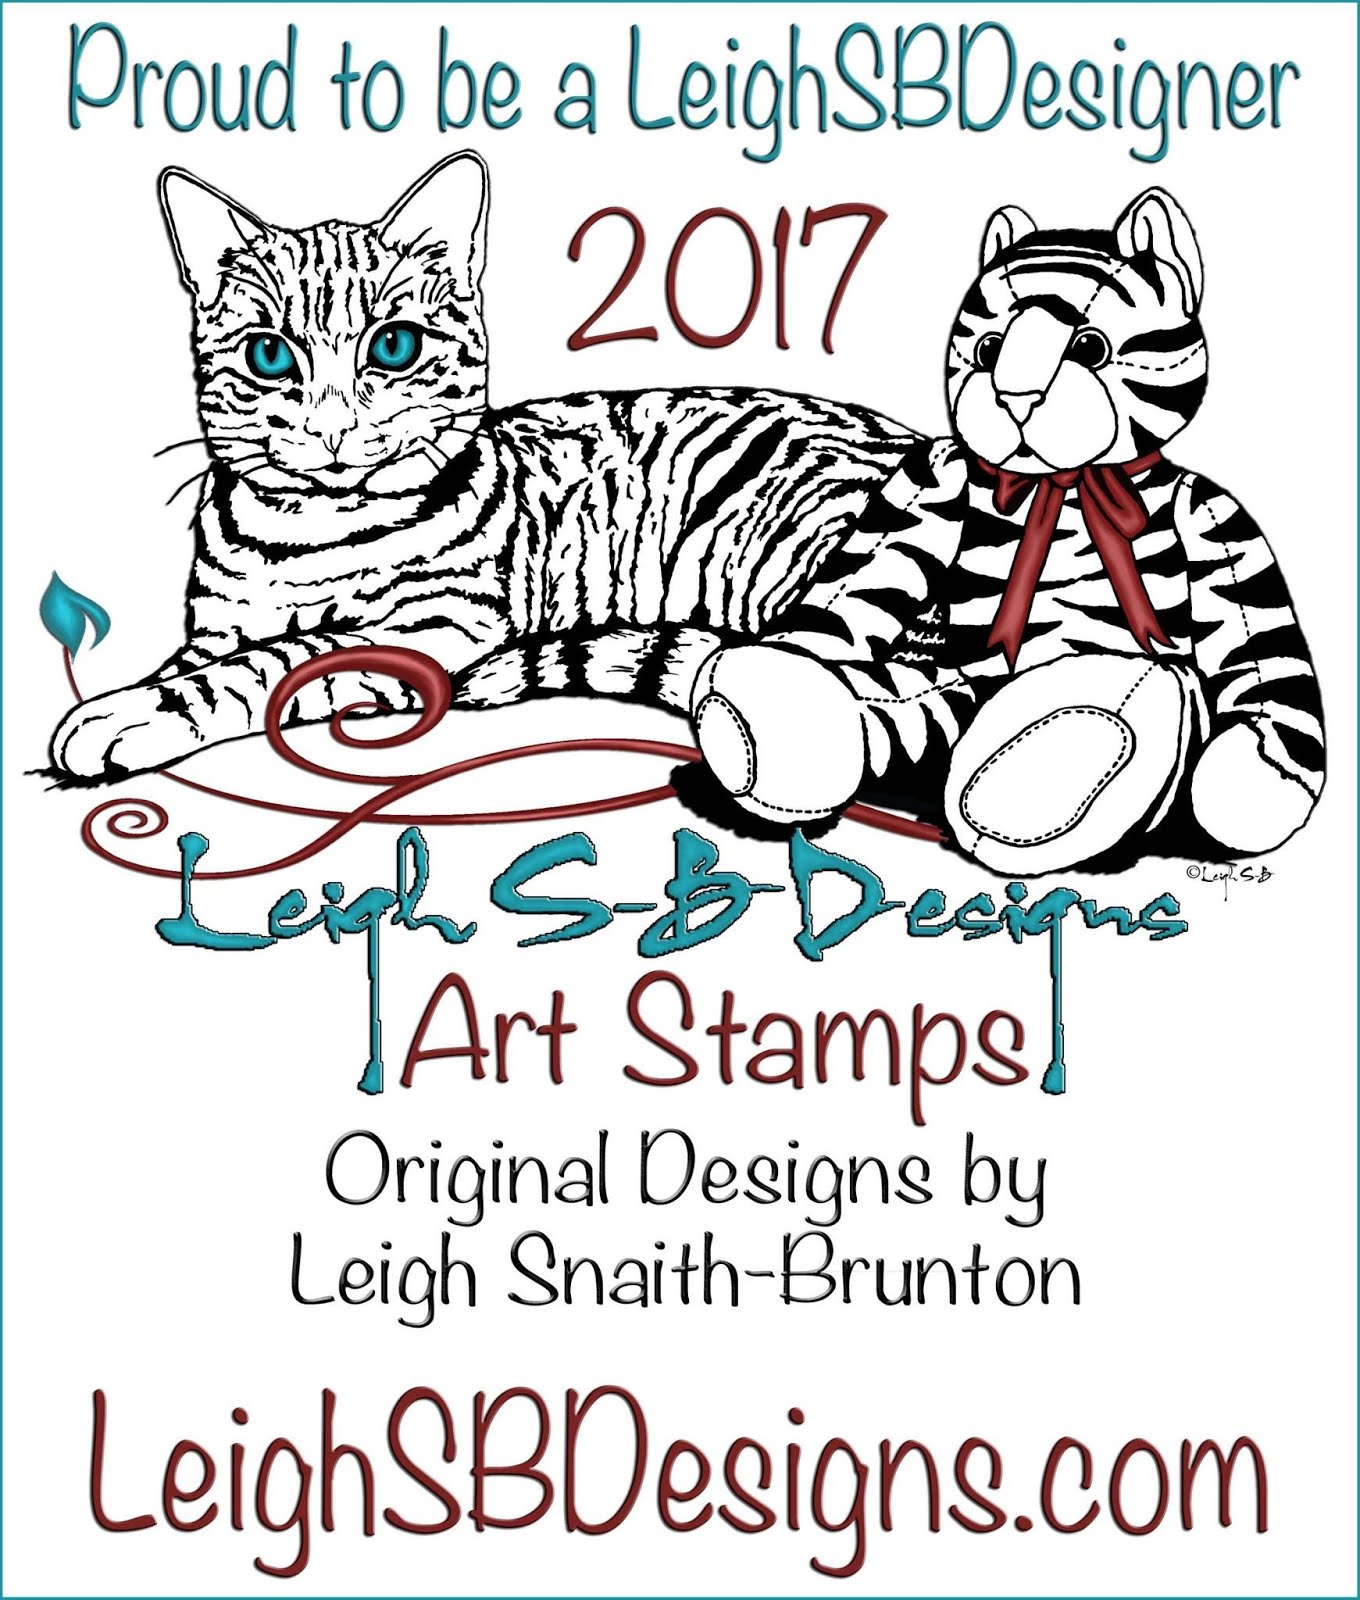 LeighSBDesigns Art Stamps